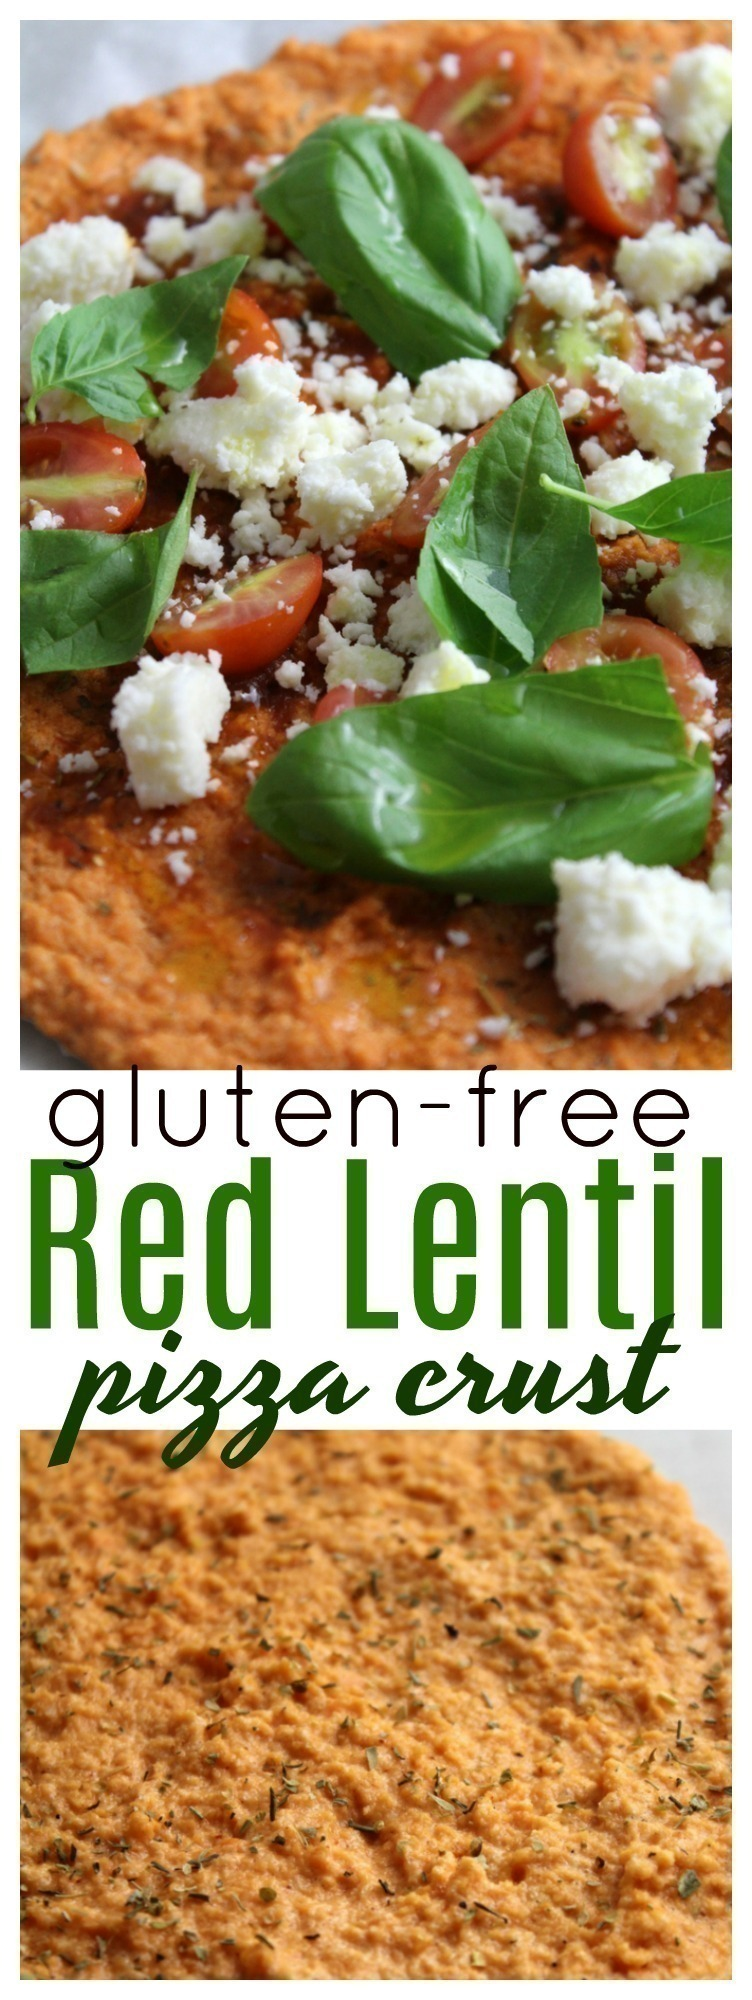 This Red Lentil Pizza Crust is super easy to whip up, gluten-free and great for a meatless meal. It pairs up super with homemade marinara sauce, and fresh cheese. Yum!